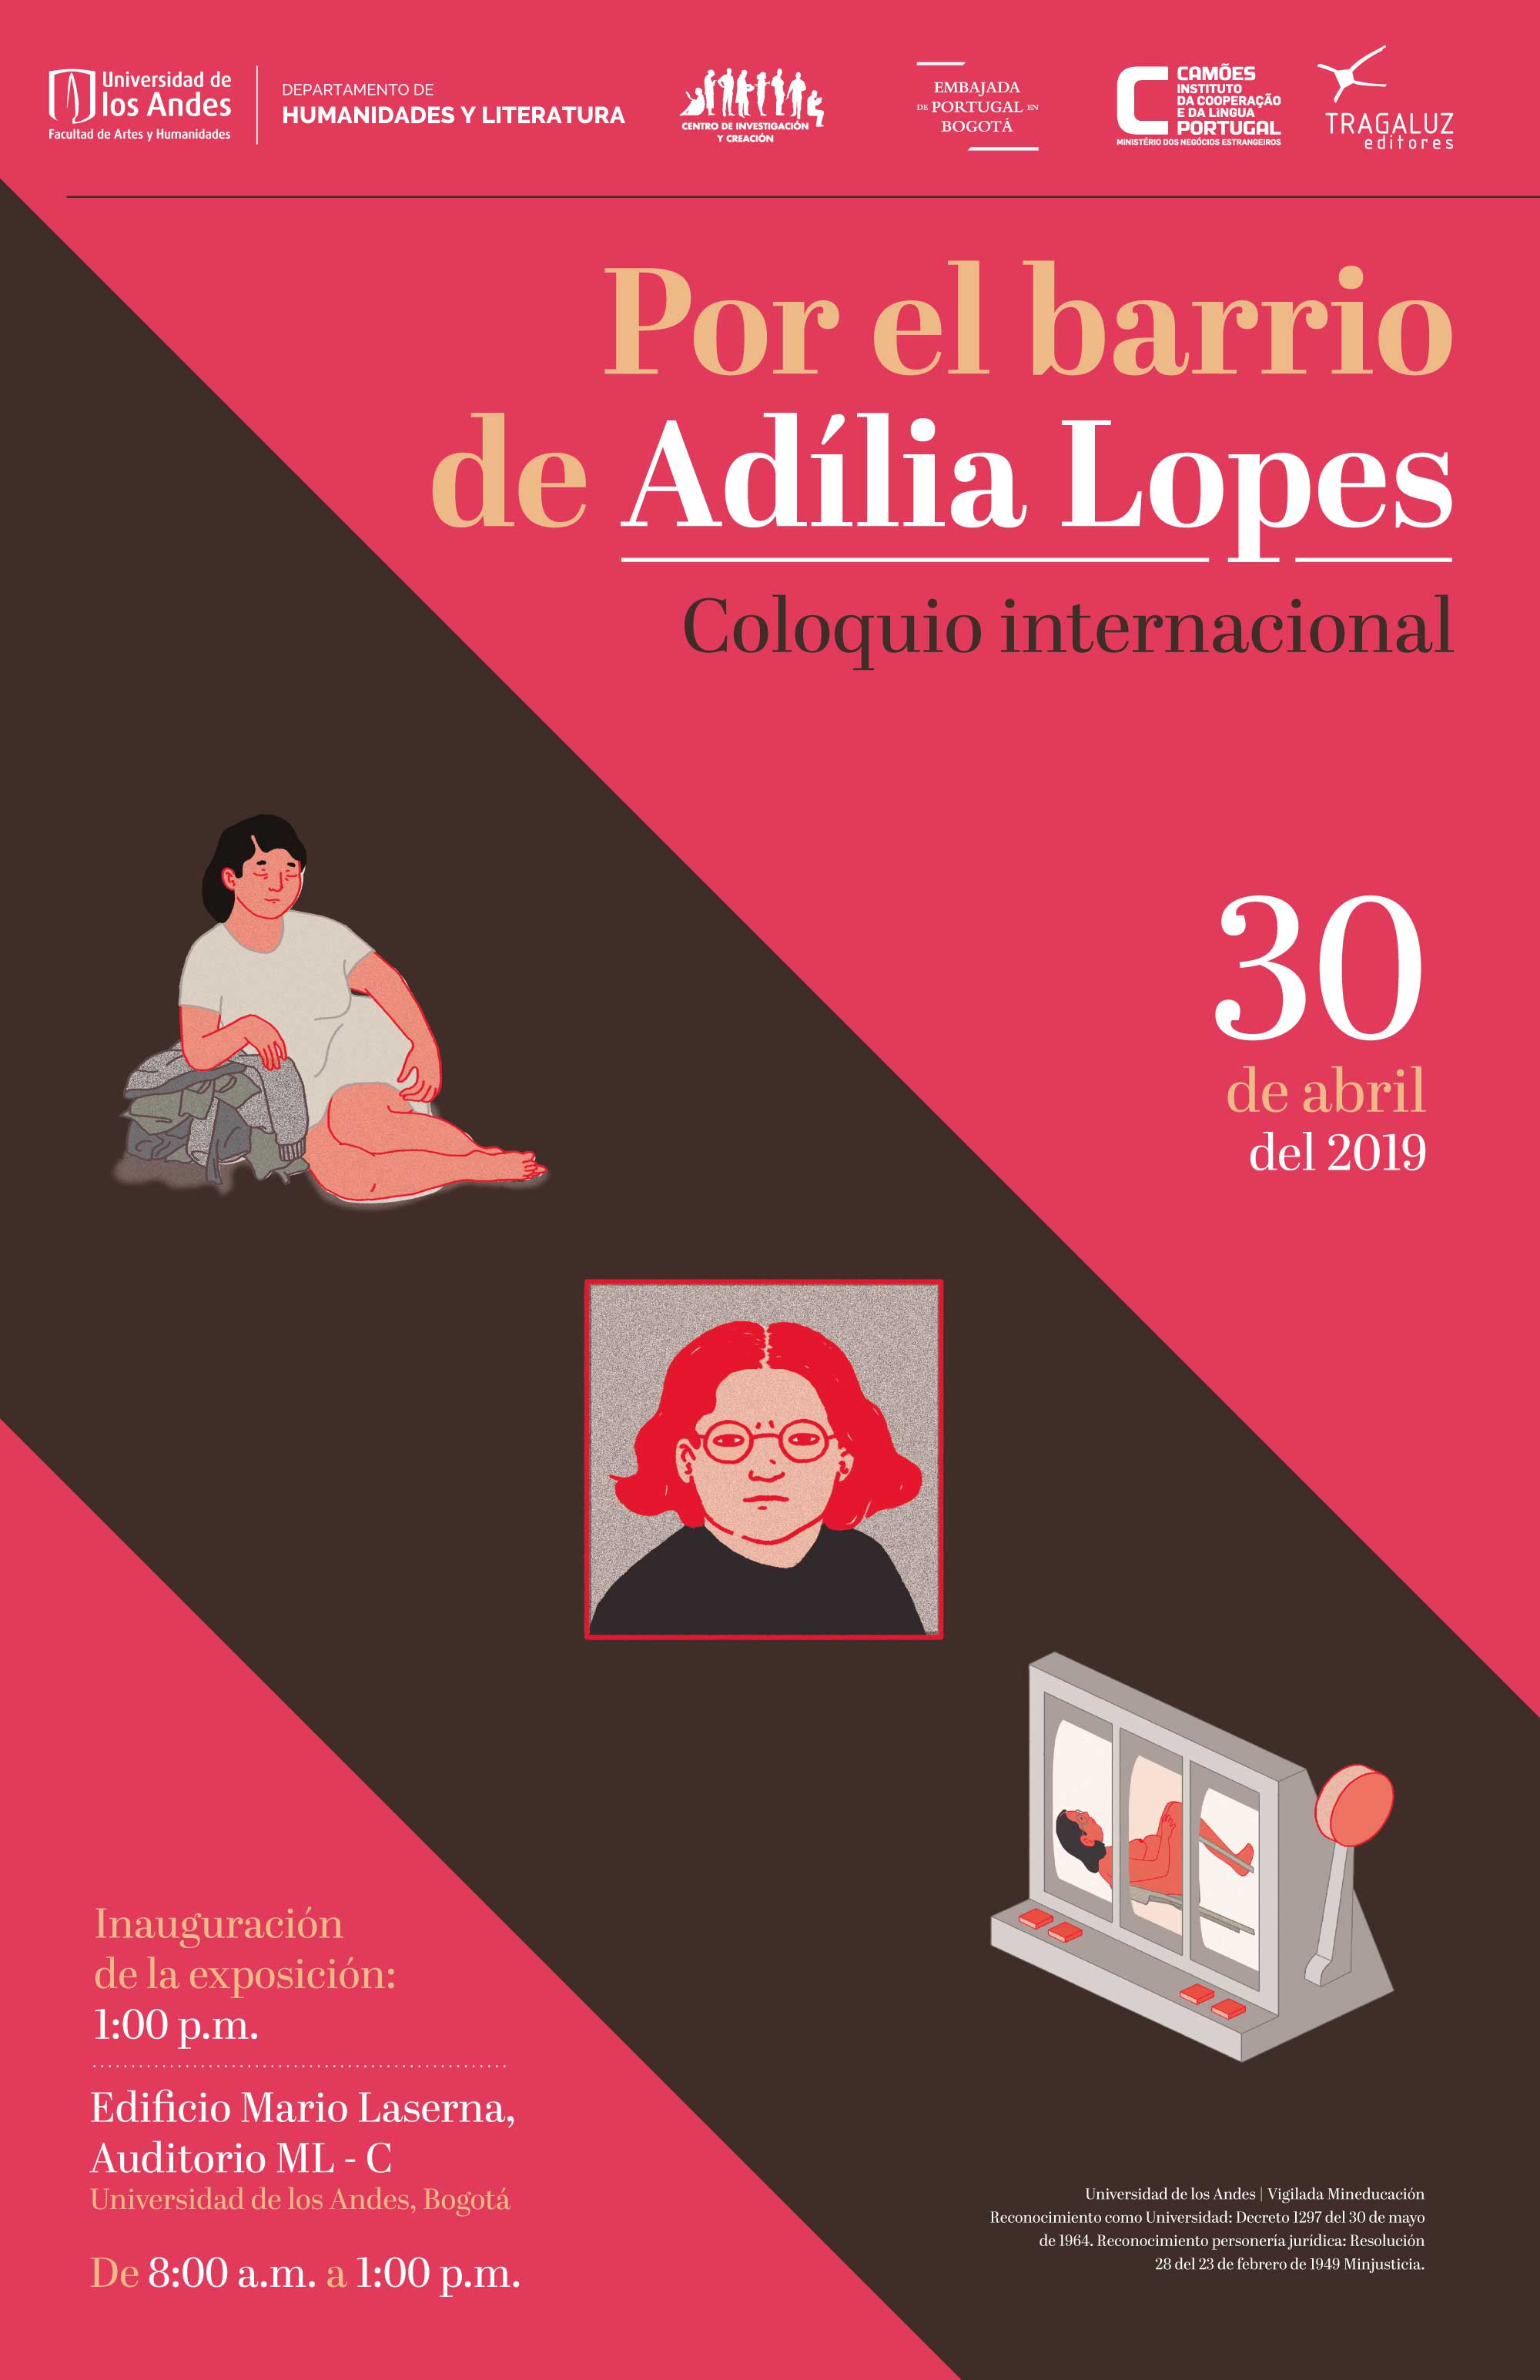 Coloquio internacional Adília Lopes